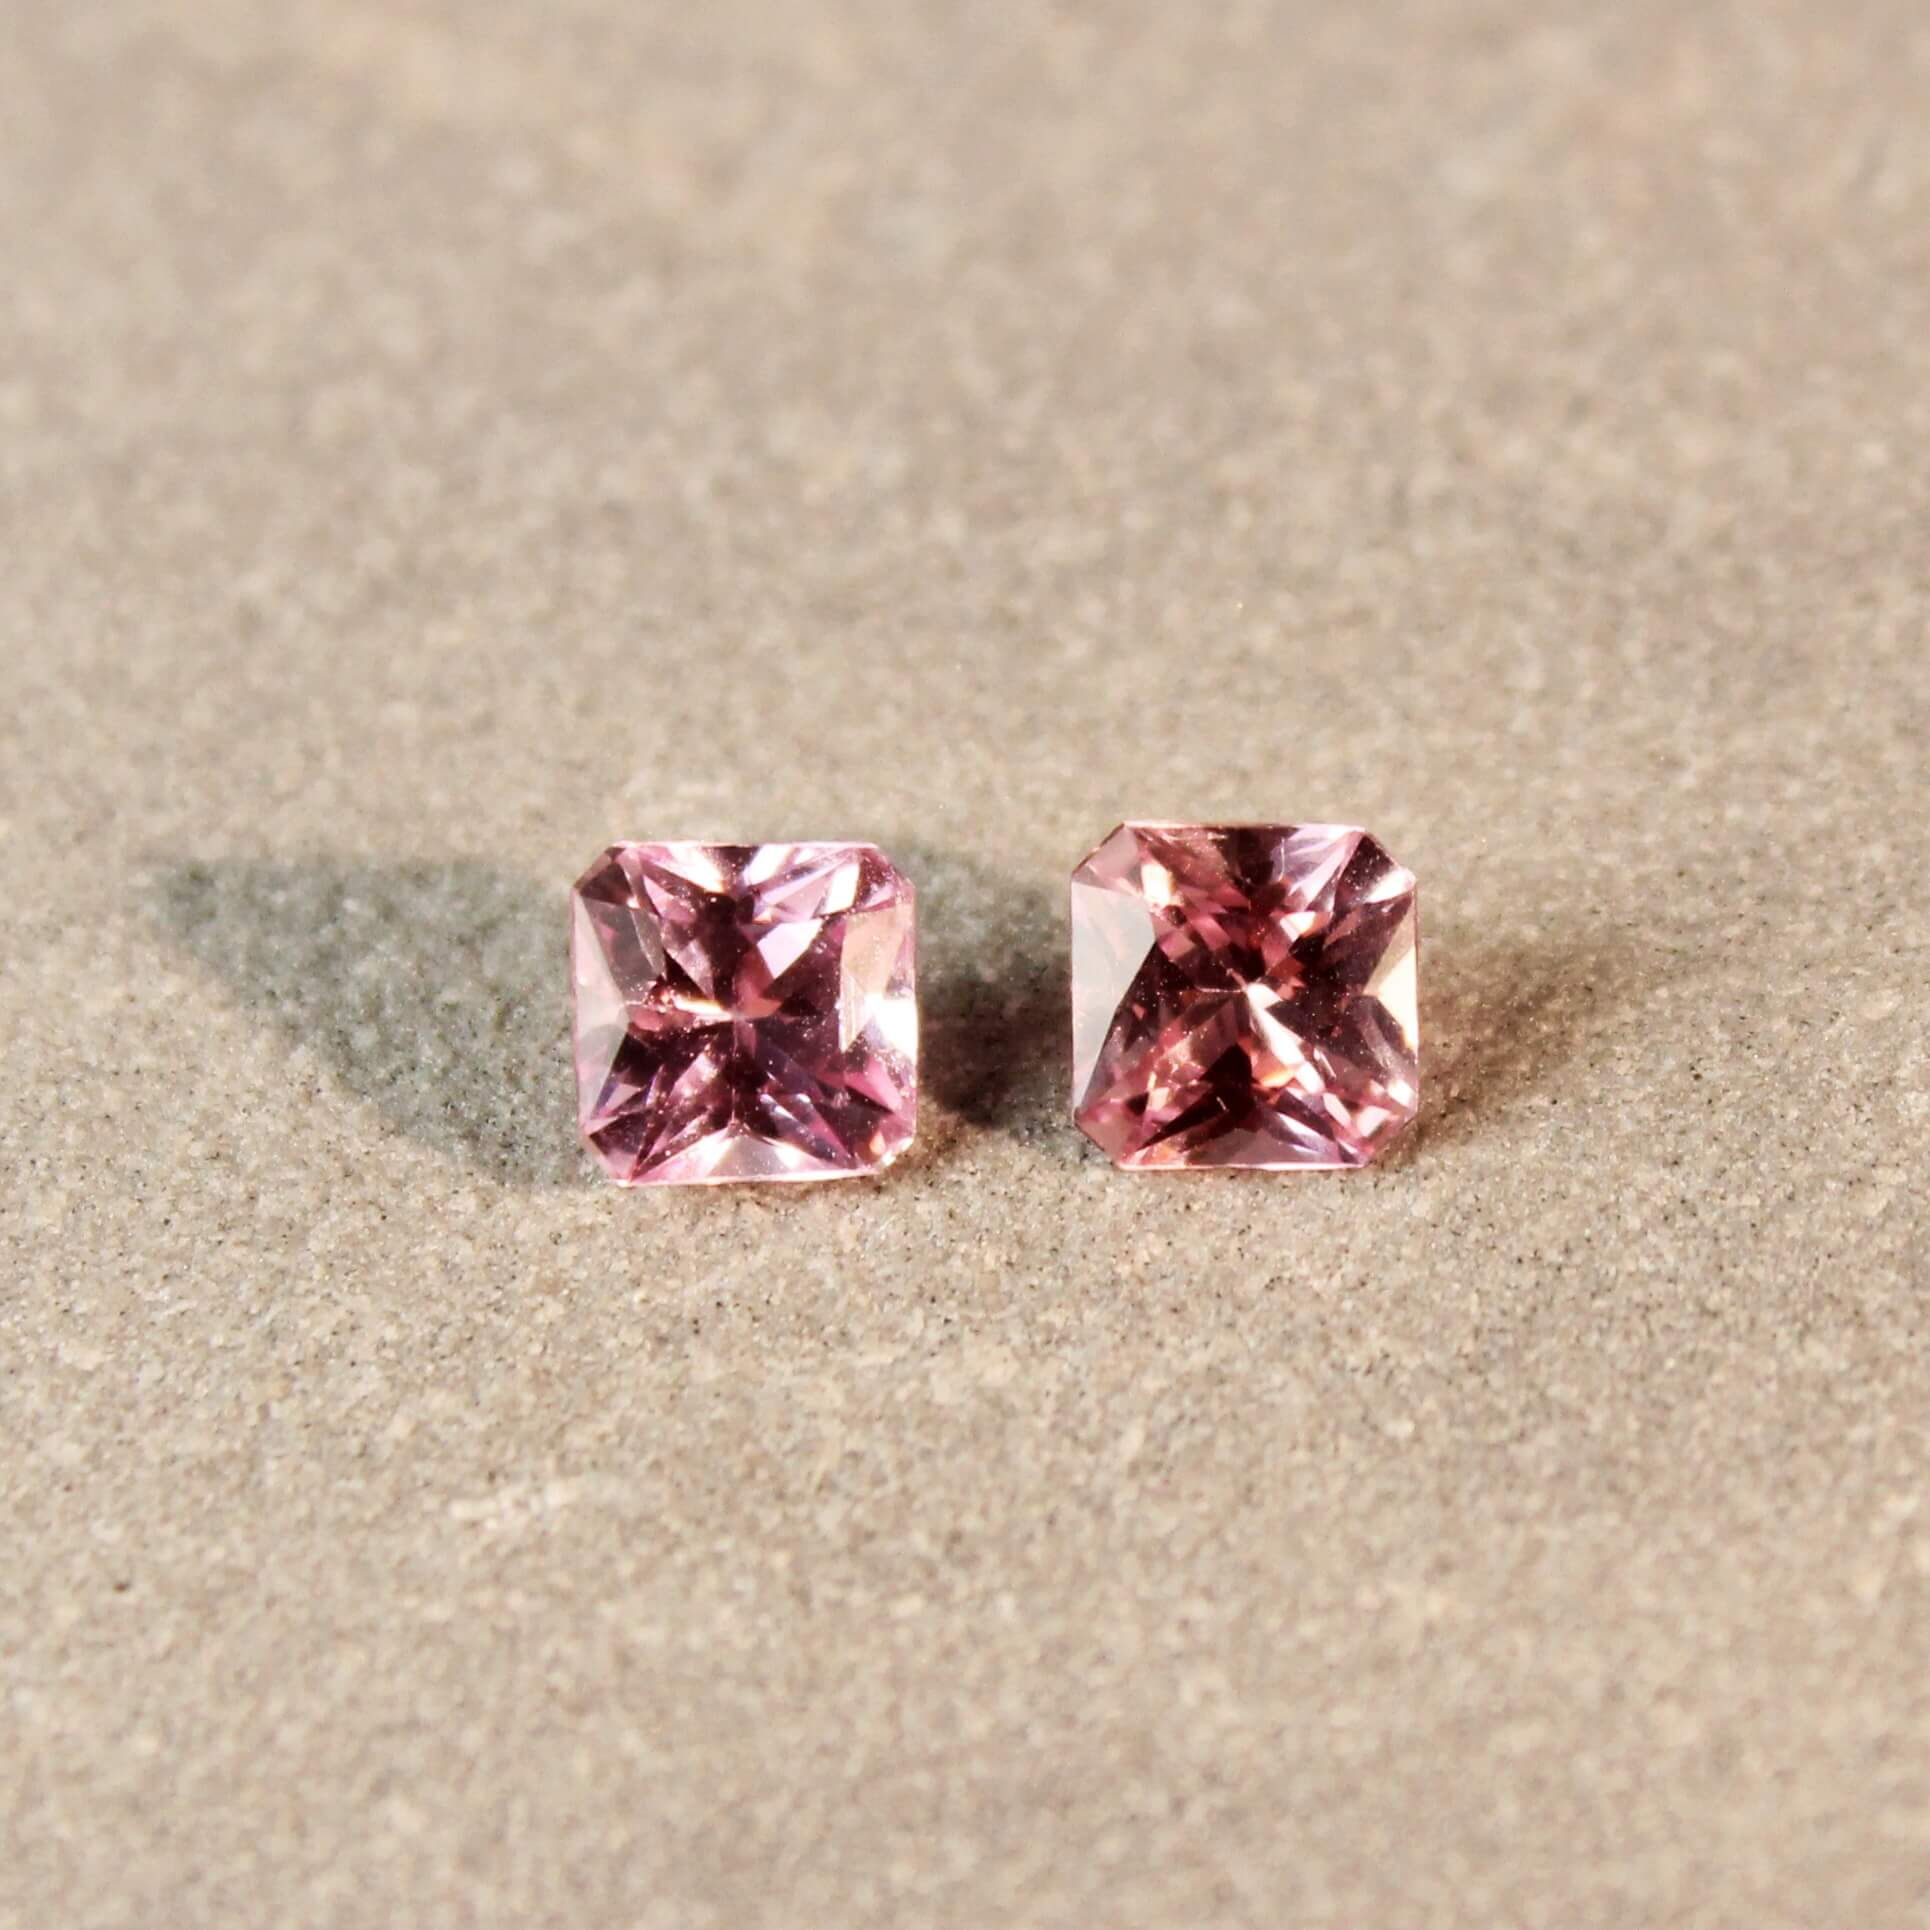 1.37 ct pink radiant sapphire pair